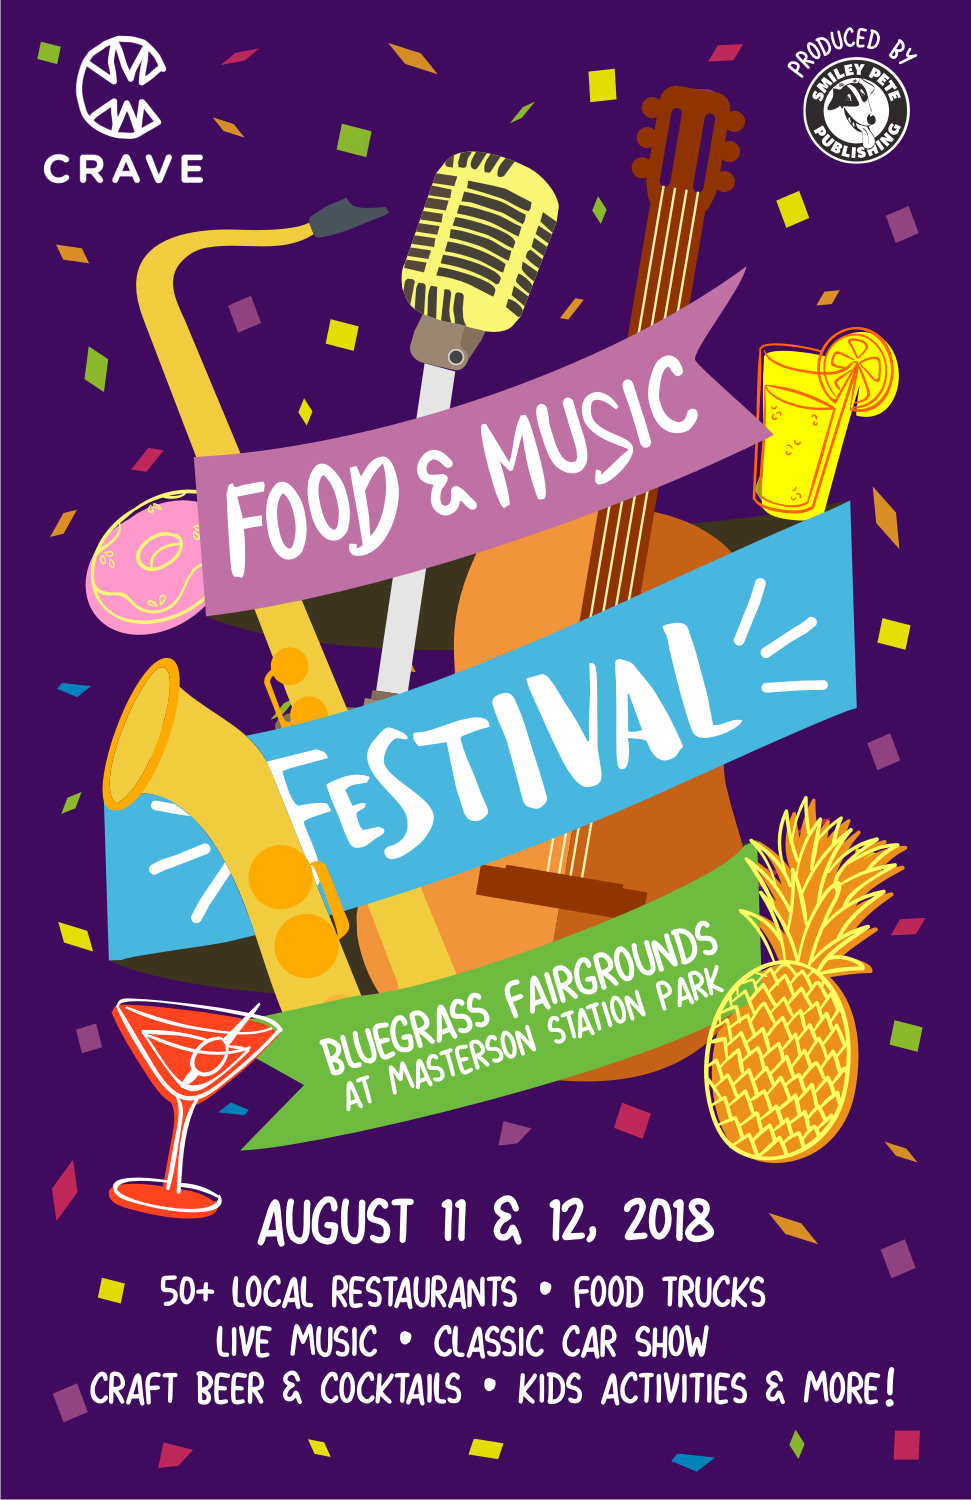 Personable Playful Festival Poster Design For A Company By